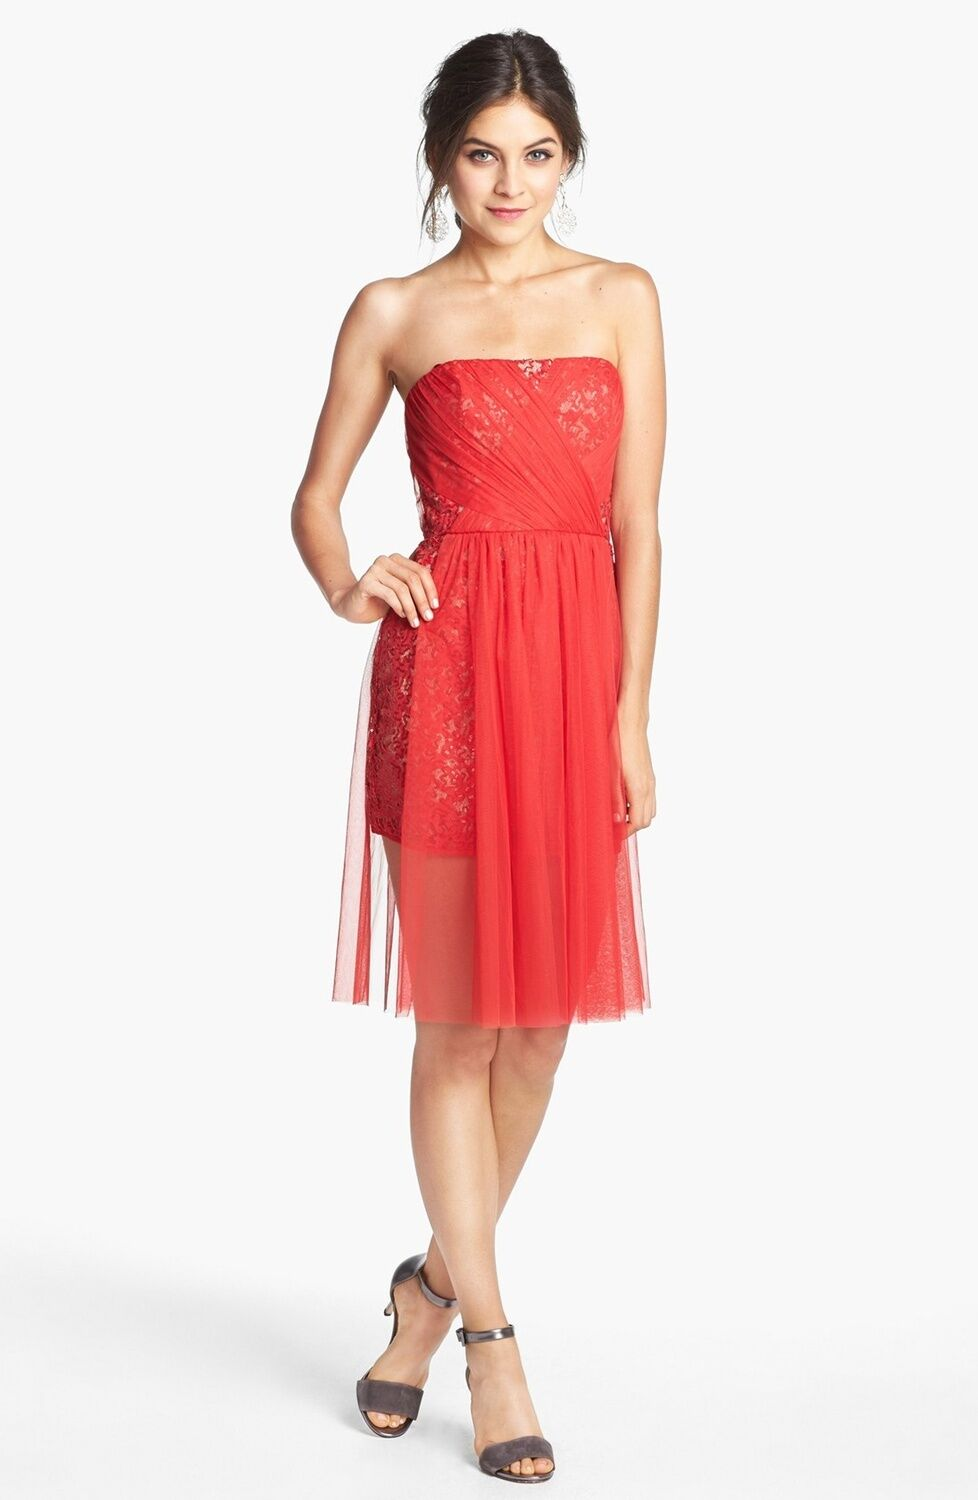 NWT BCBG MAXAZRIA Vienna Strapless Sequin Dress Jewel Red size 8